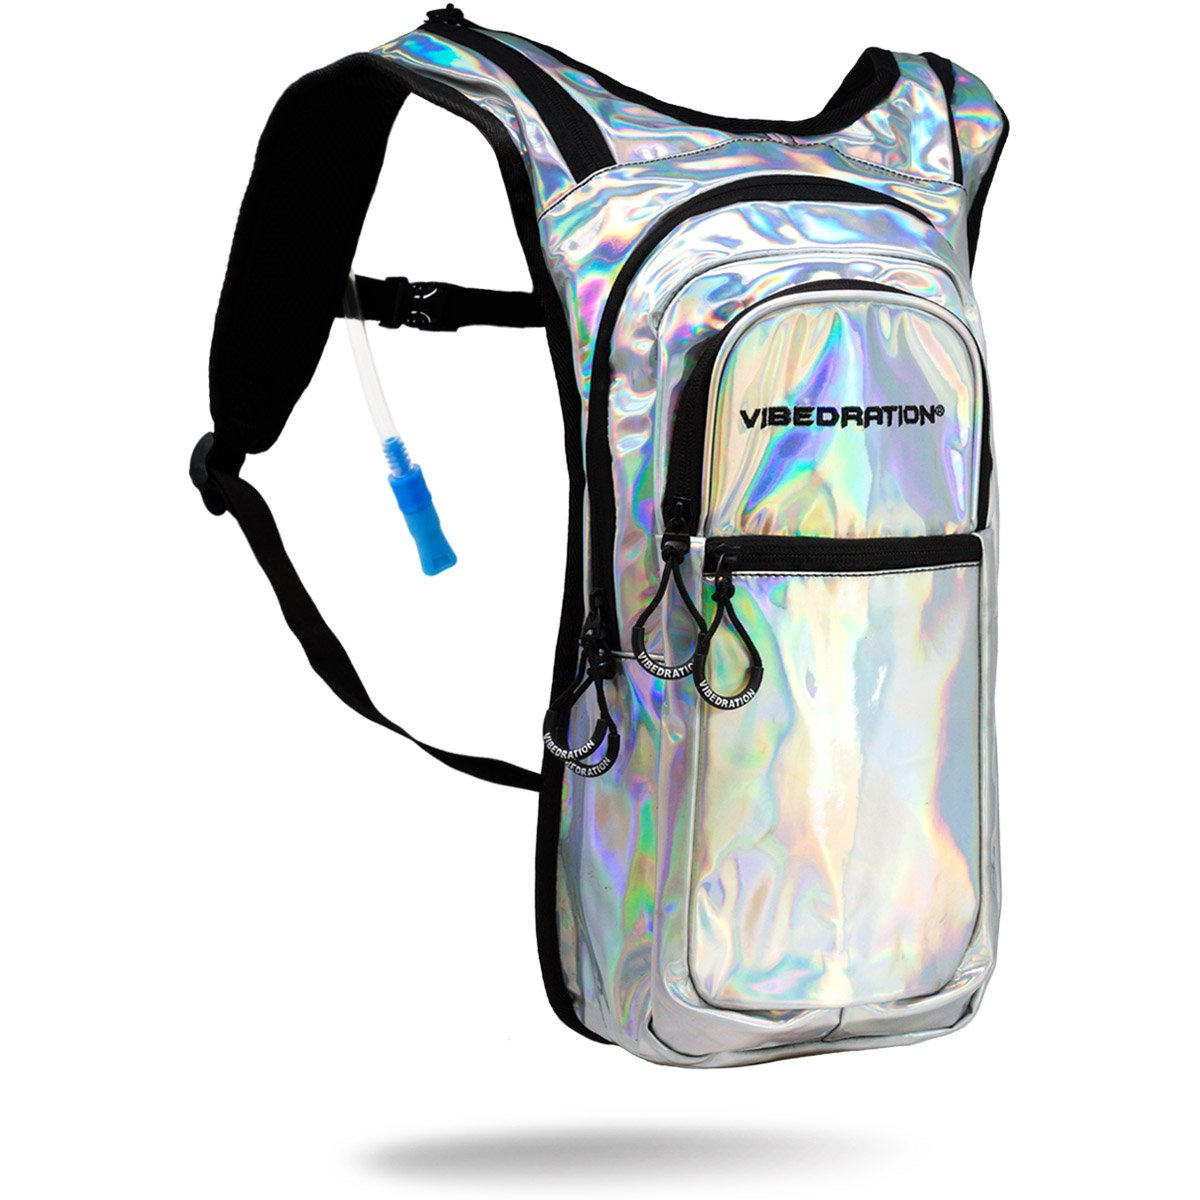 ad52726f23 Vibedration VIP 2 Liter Holographic Hydration Pack | Festival Rave Hydration,  Hiking Camping Backpack (Silver)